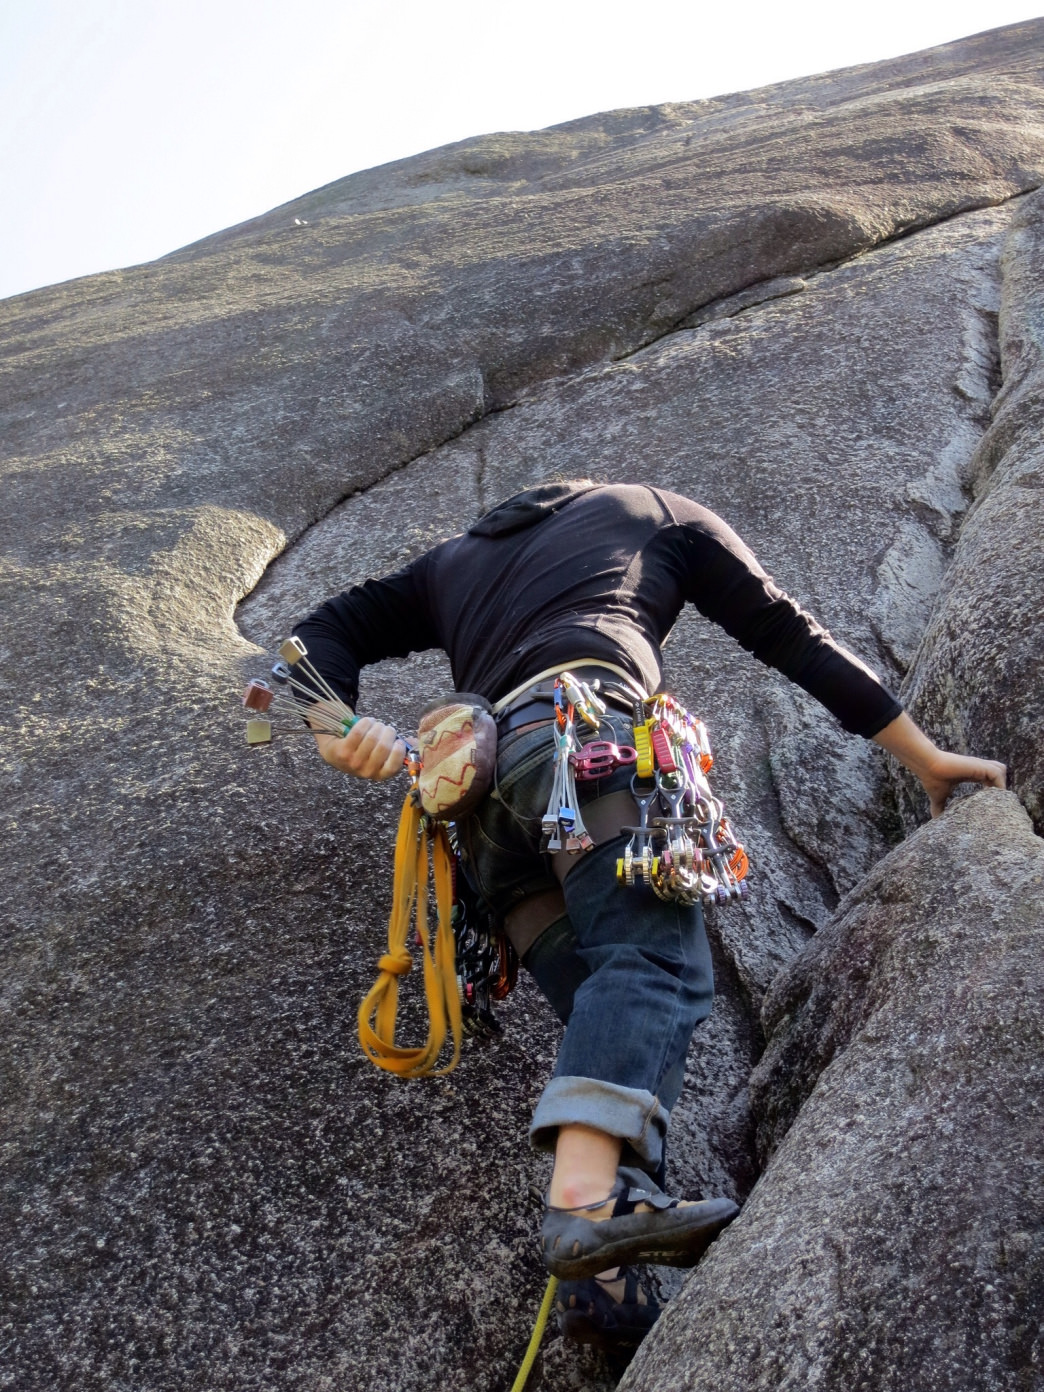 Trad is the most time consuming and committing type of climbing.